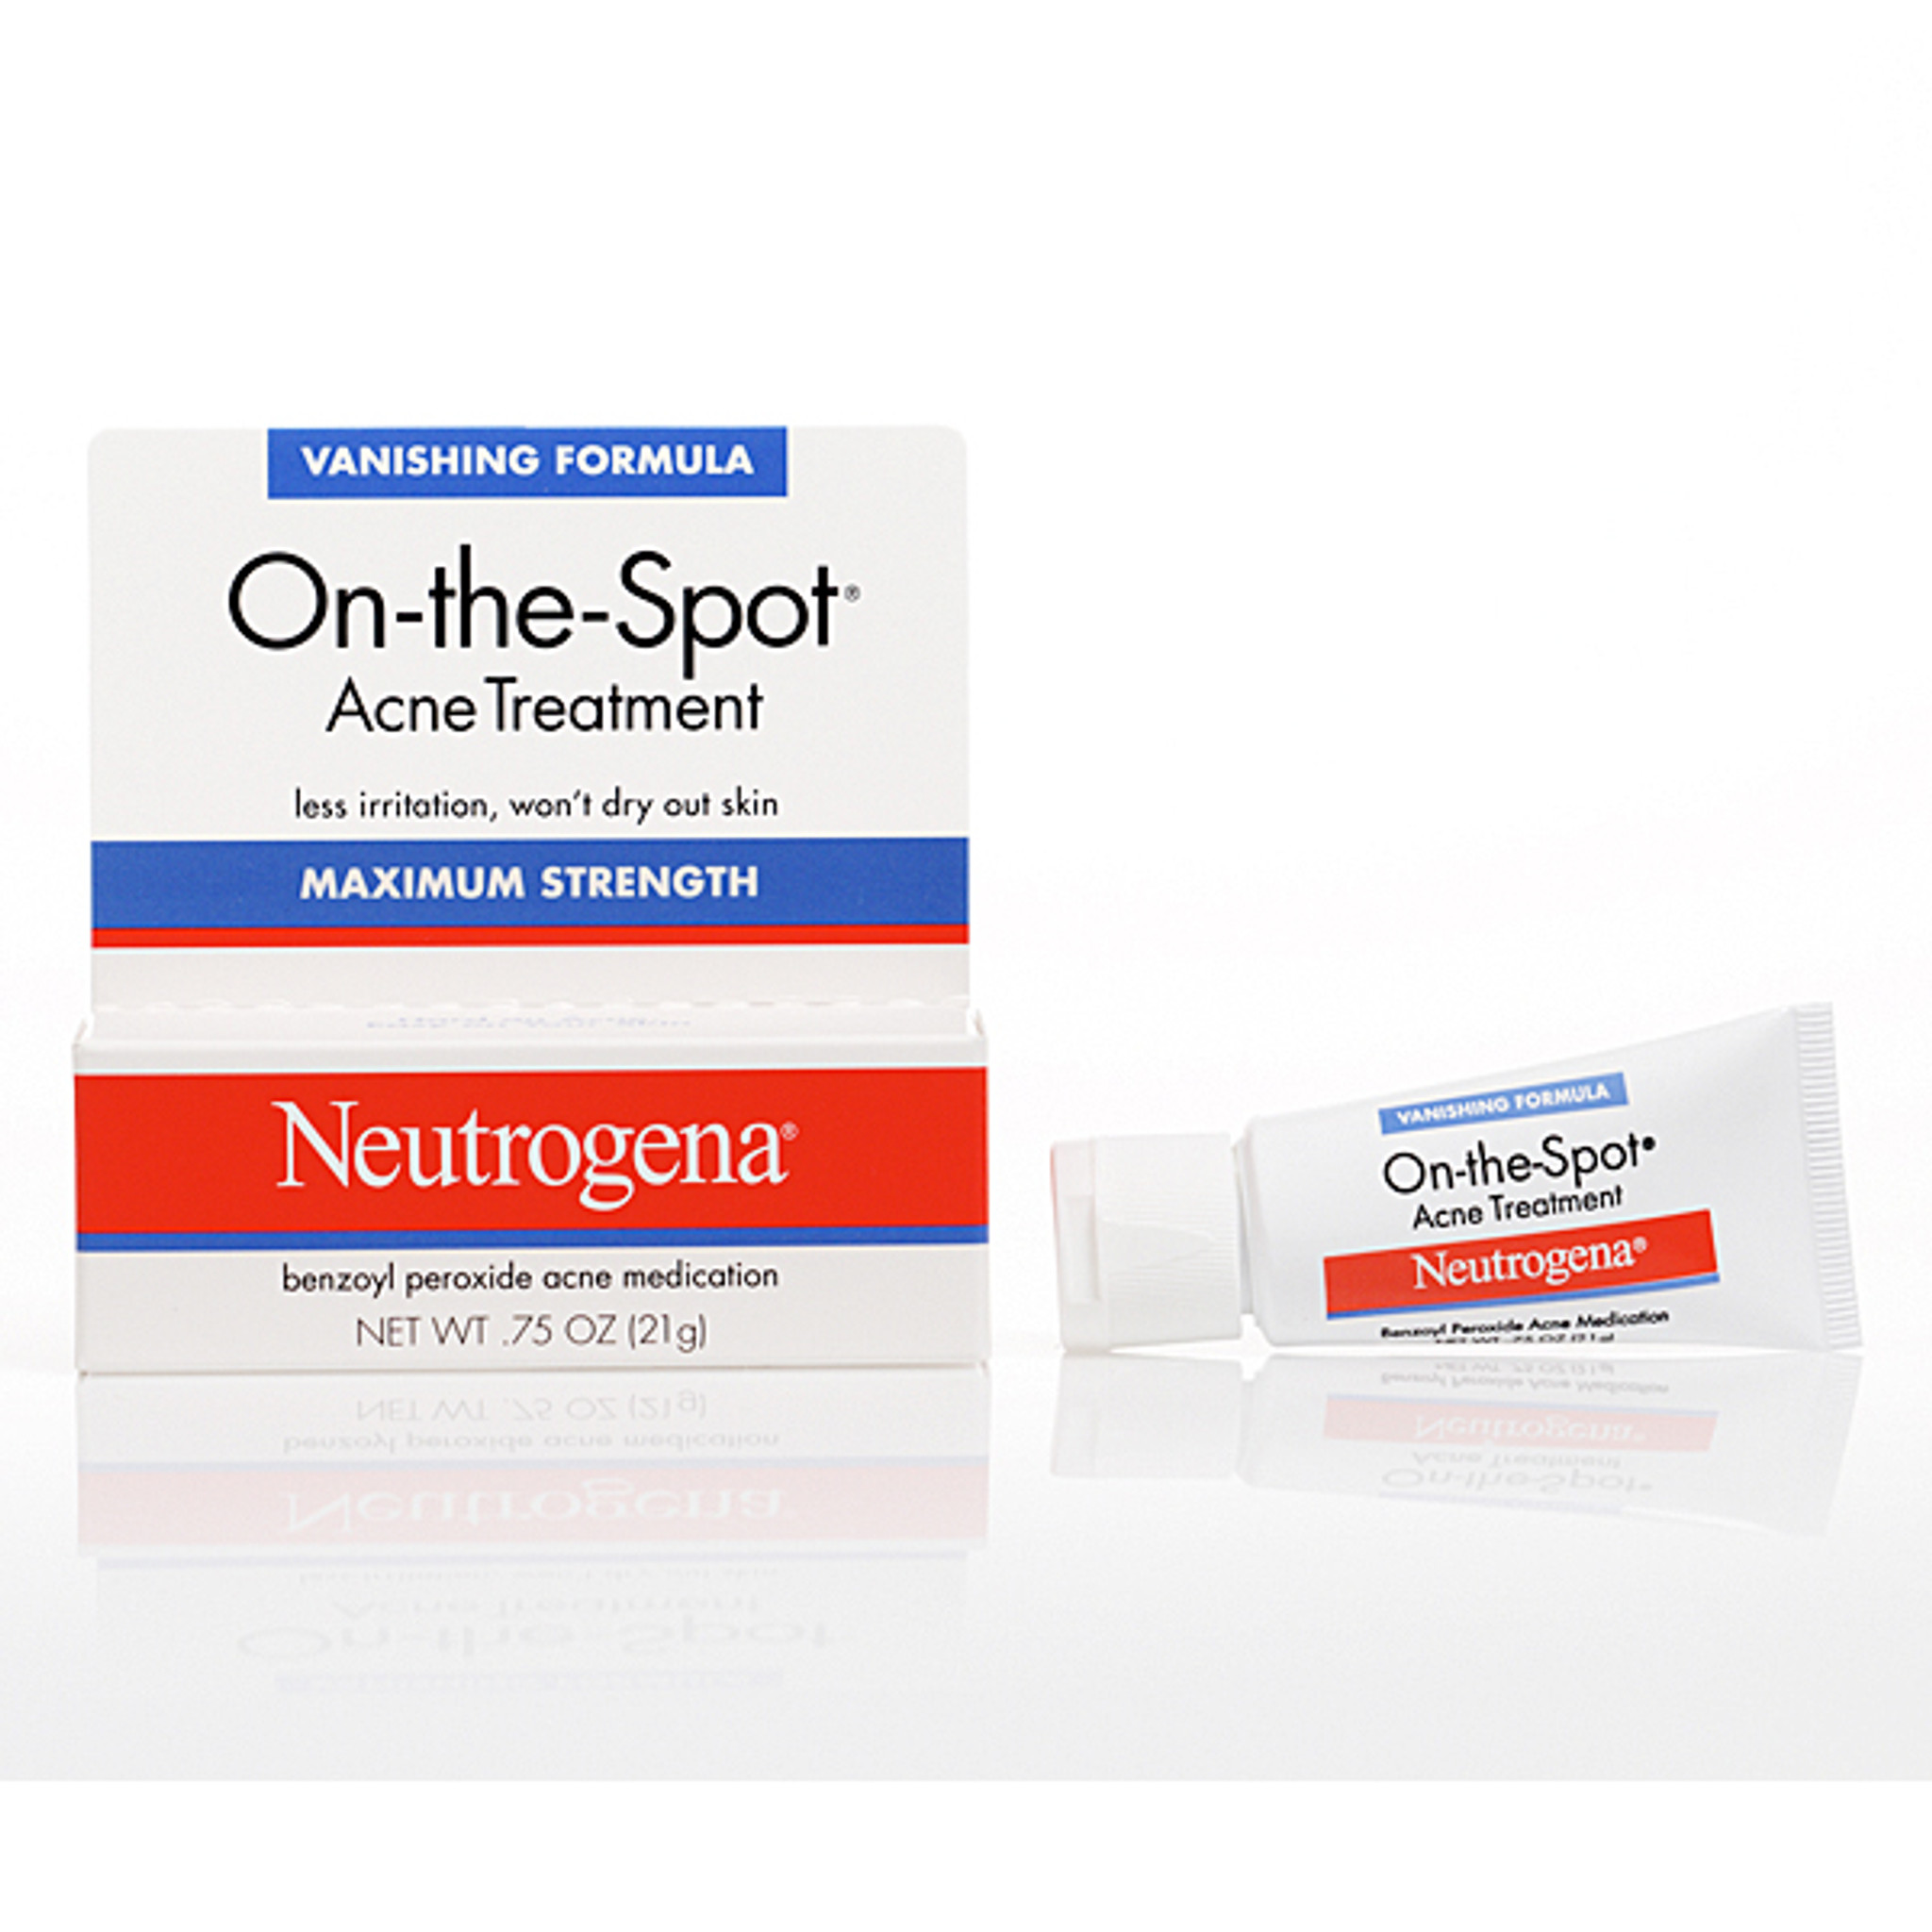 Neutrogena On The Spot Acne Treatment Vanishing Cream Formula